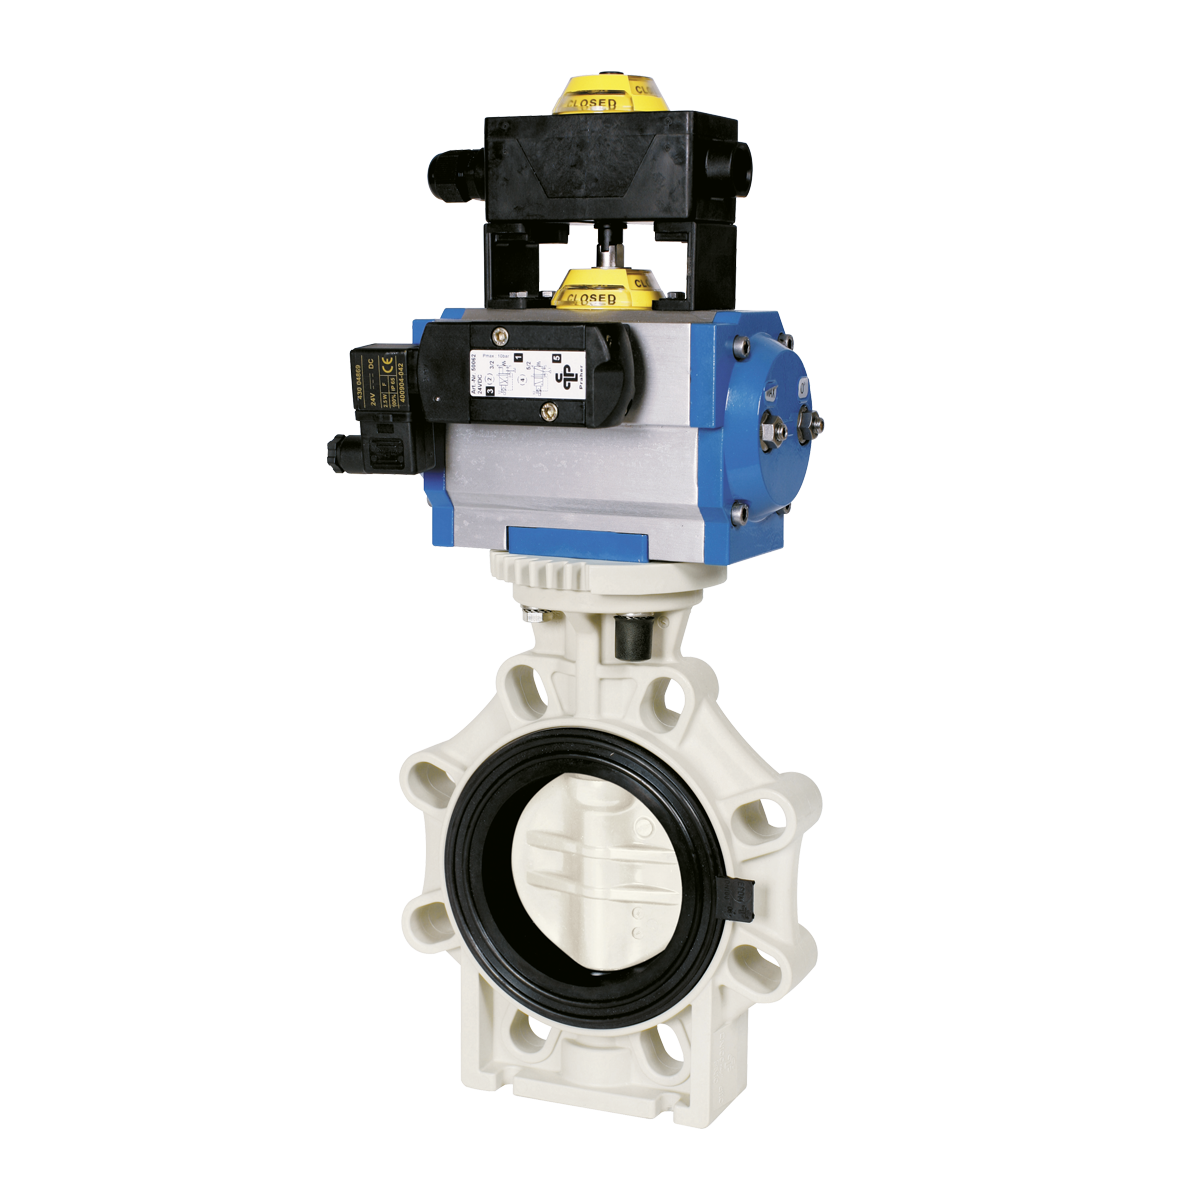 Praher Butterfly valve K4 PP with pneumatic actuator, beige, black, blue, yellow